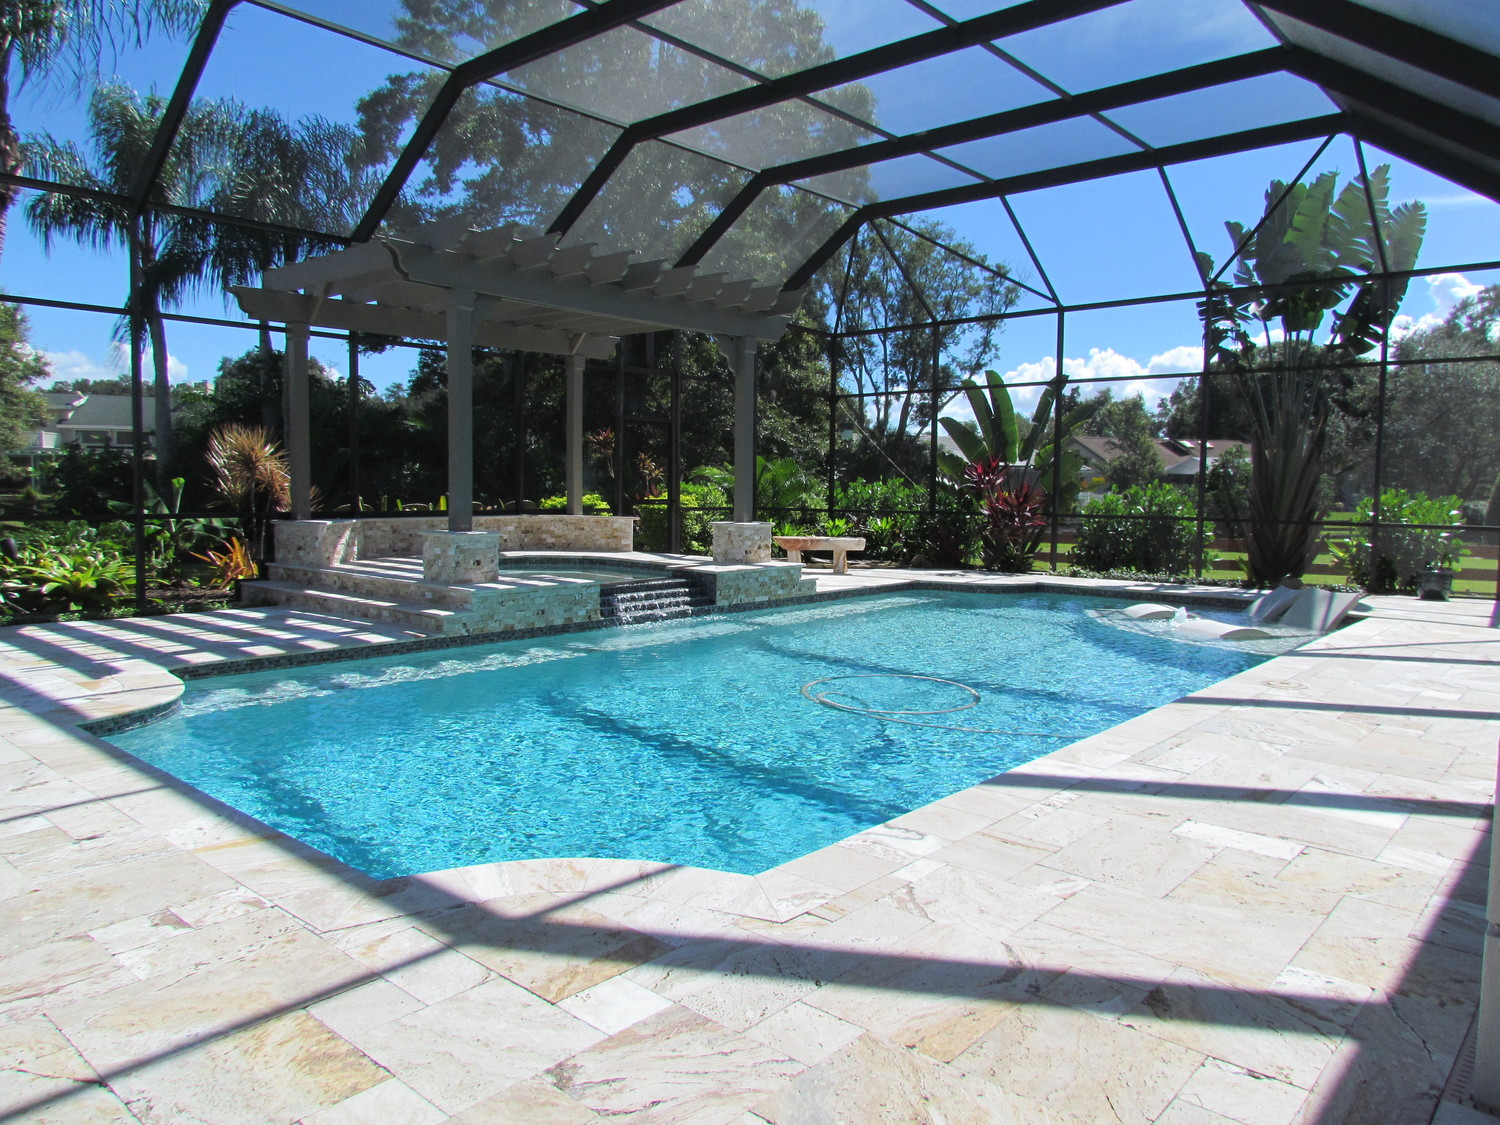 Pool Cleaning — Swimming Pool Service Clearwater and Safety ...